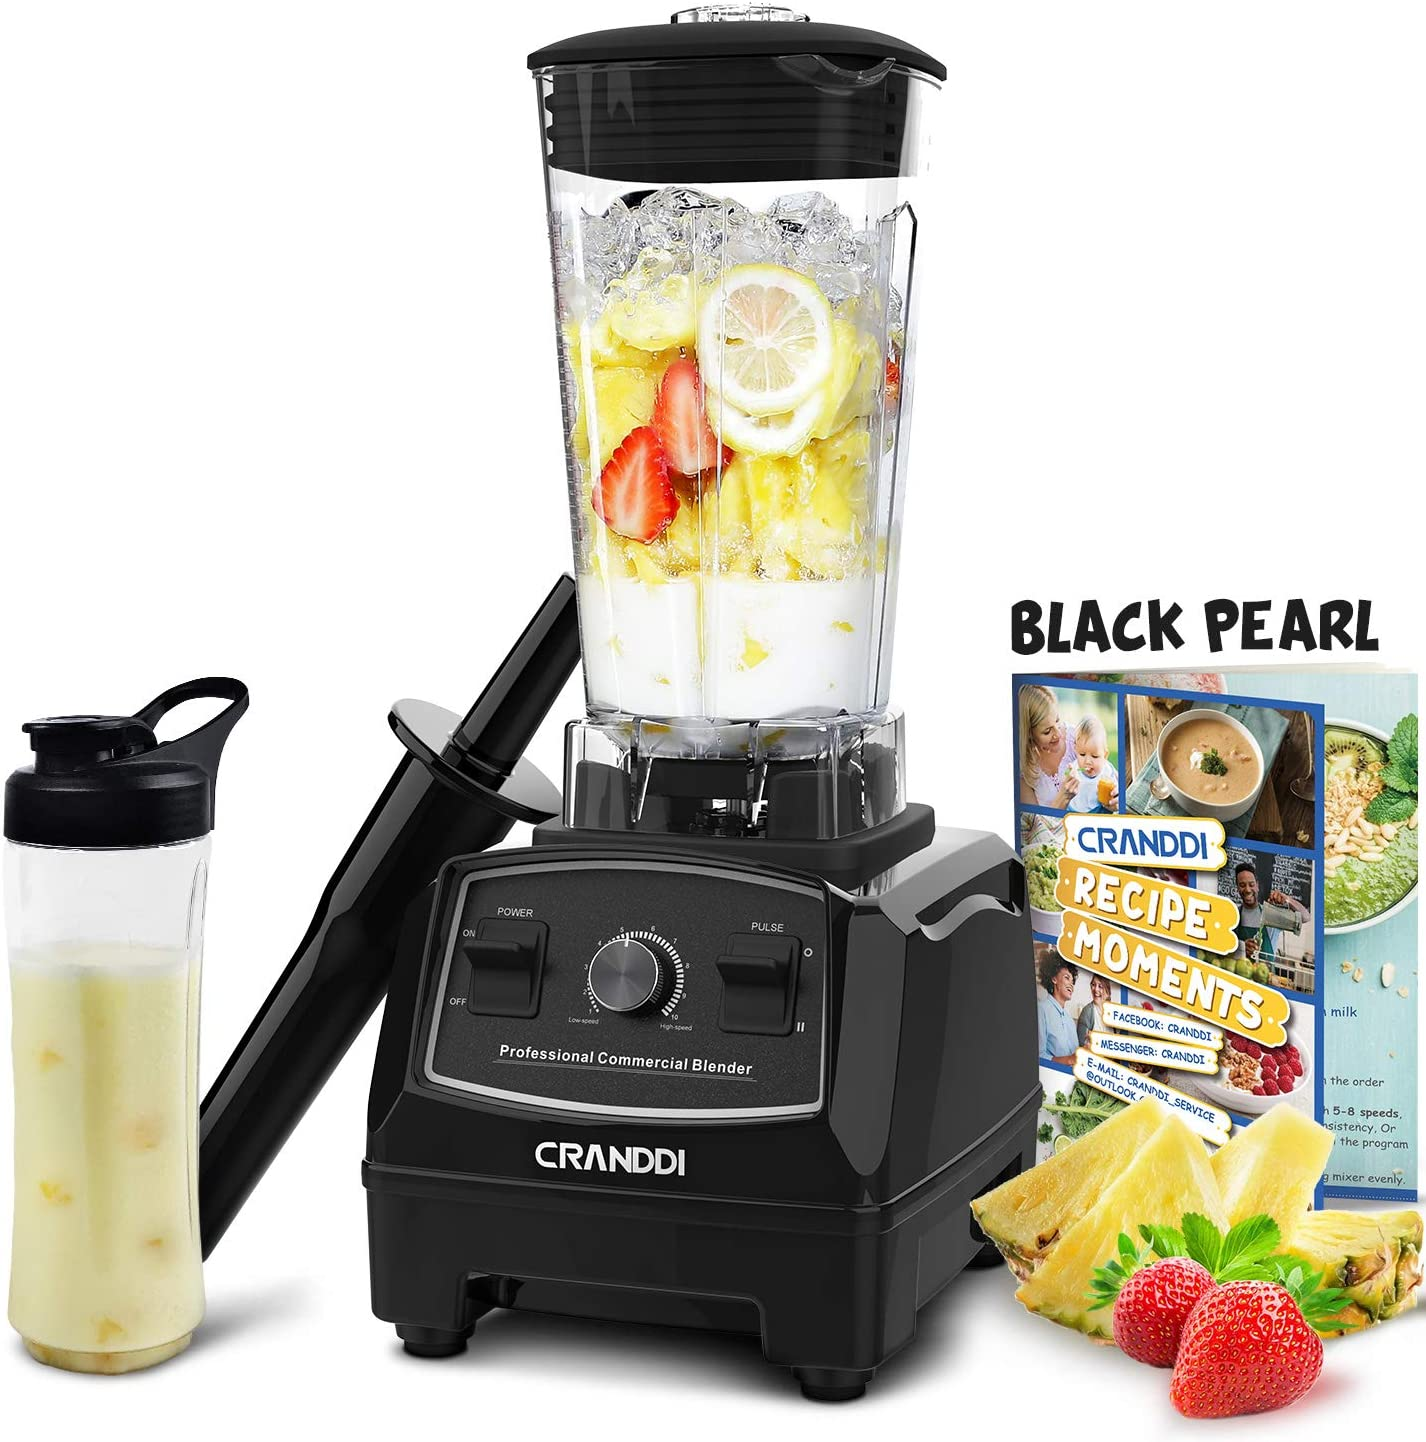 CRANDDI Countertop Blender, with 1500W Base, Professional High-Speed Smoothie Blender with 70oz Pitcher for Family Size Frozen Drinks and Smoothies, Built-in Pulse & 9-speeds Control, Easy Self-Cleaning, YL-010-B